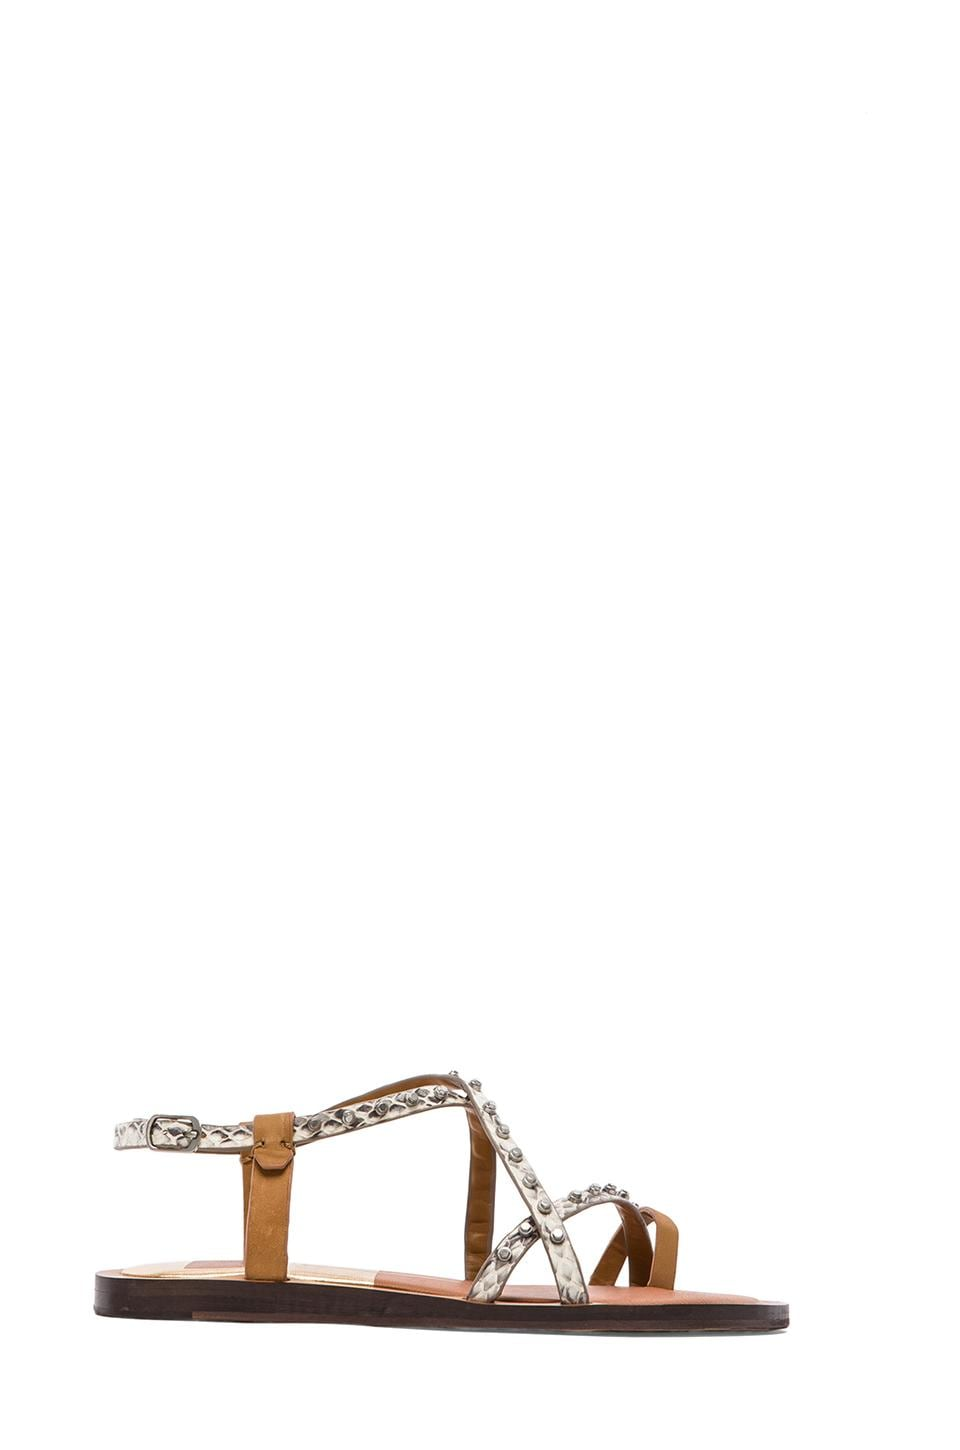 Dolce Vita Flame Sandal in Natural